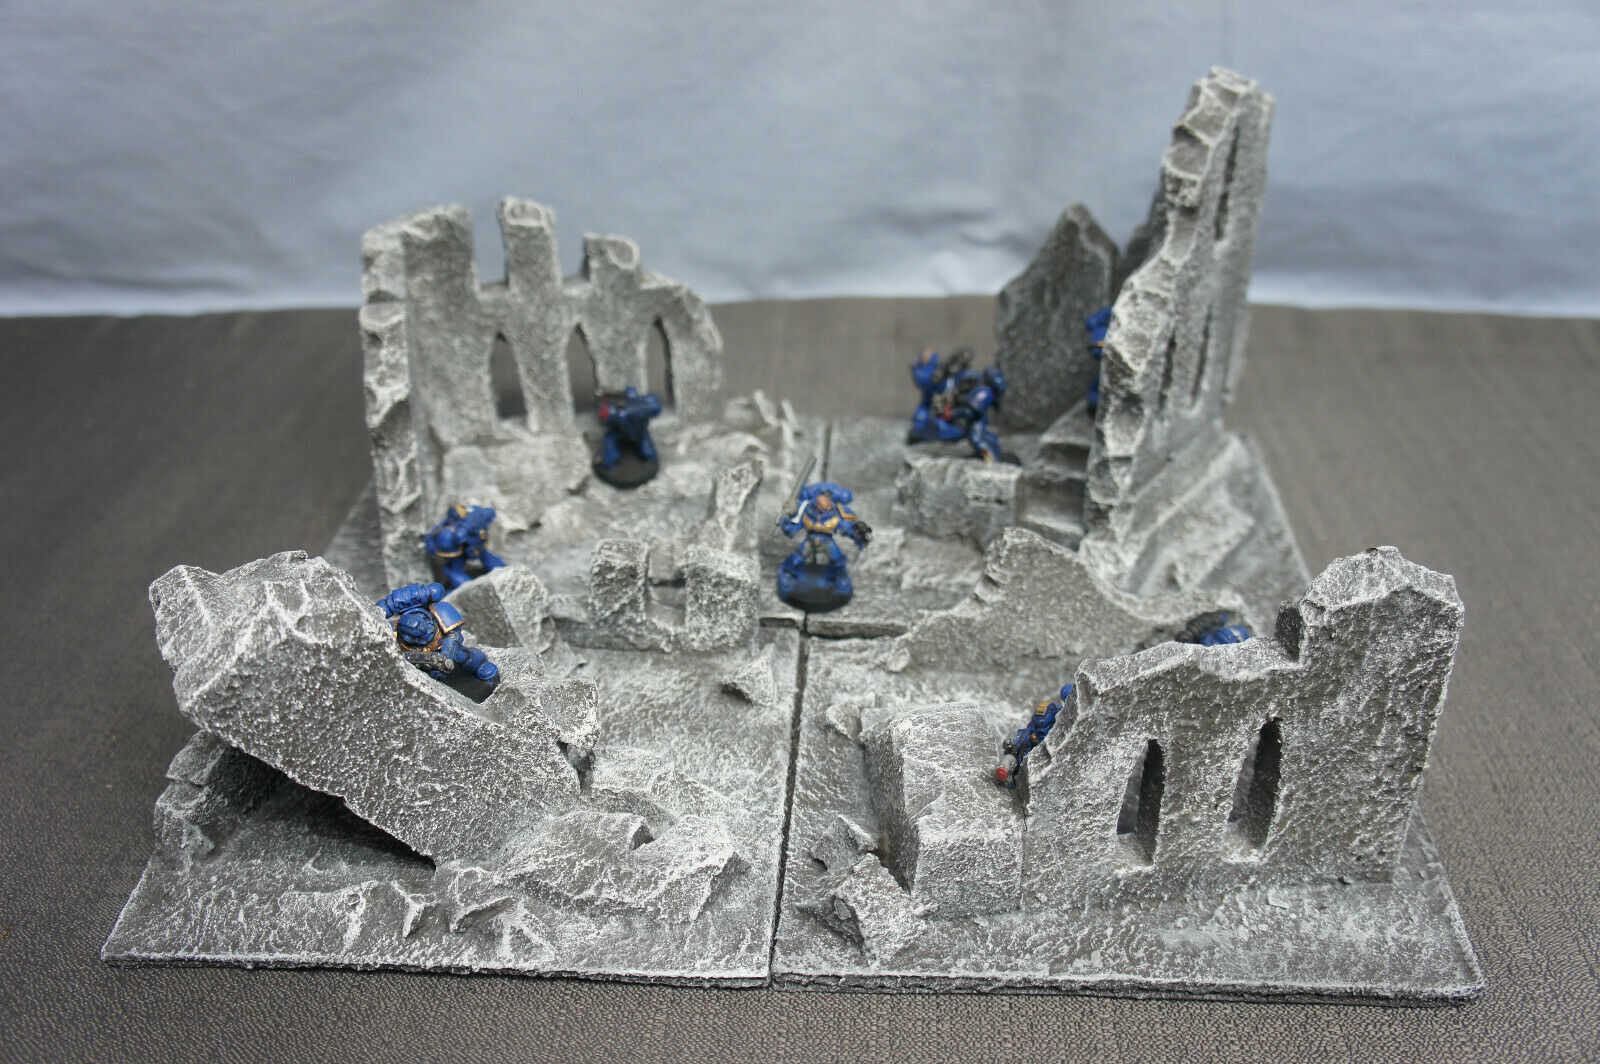 WARGAME Terrain Scenery Ruins Destroyed Building Set X 4 Handcrafted Warhammer